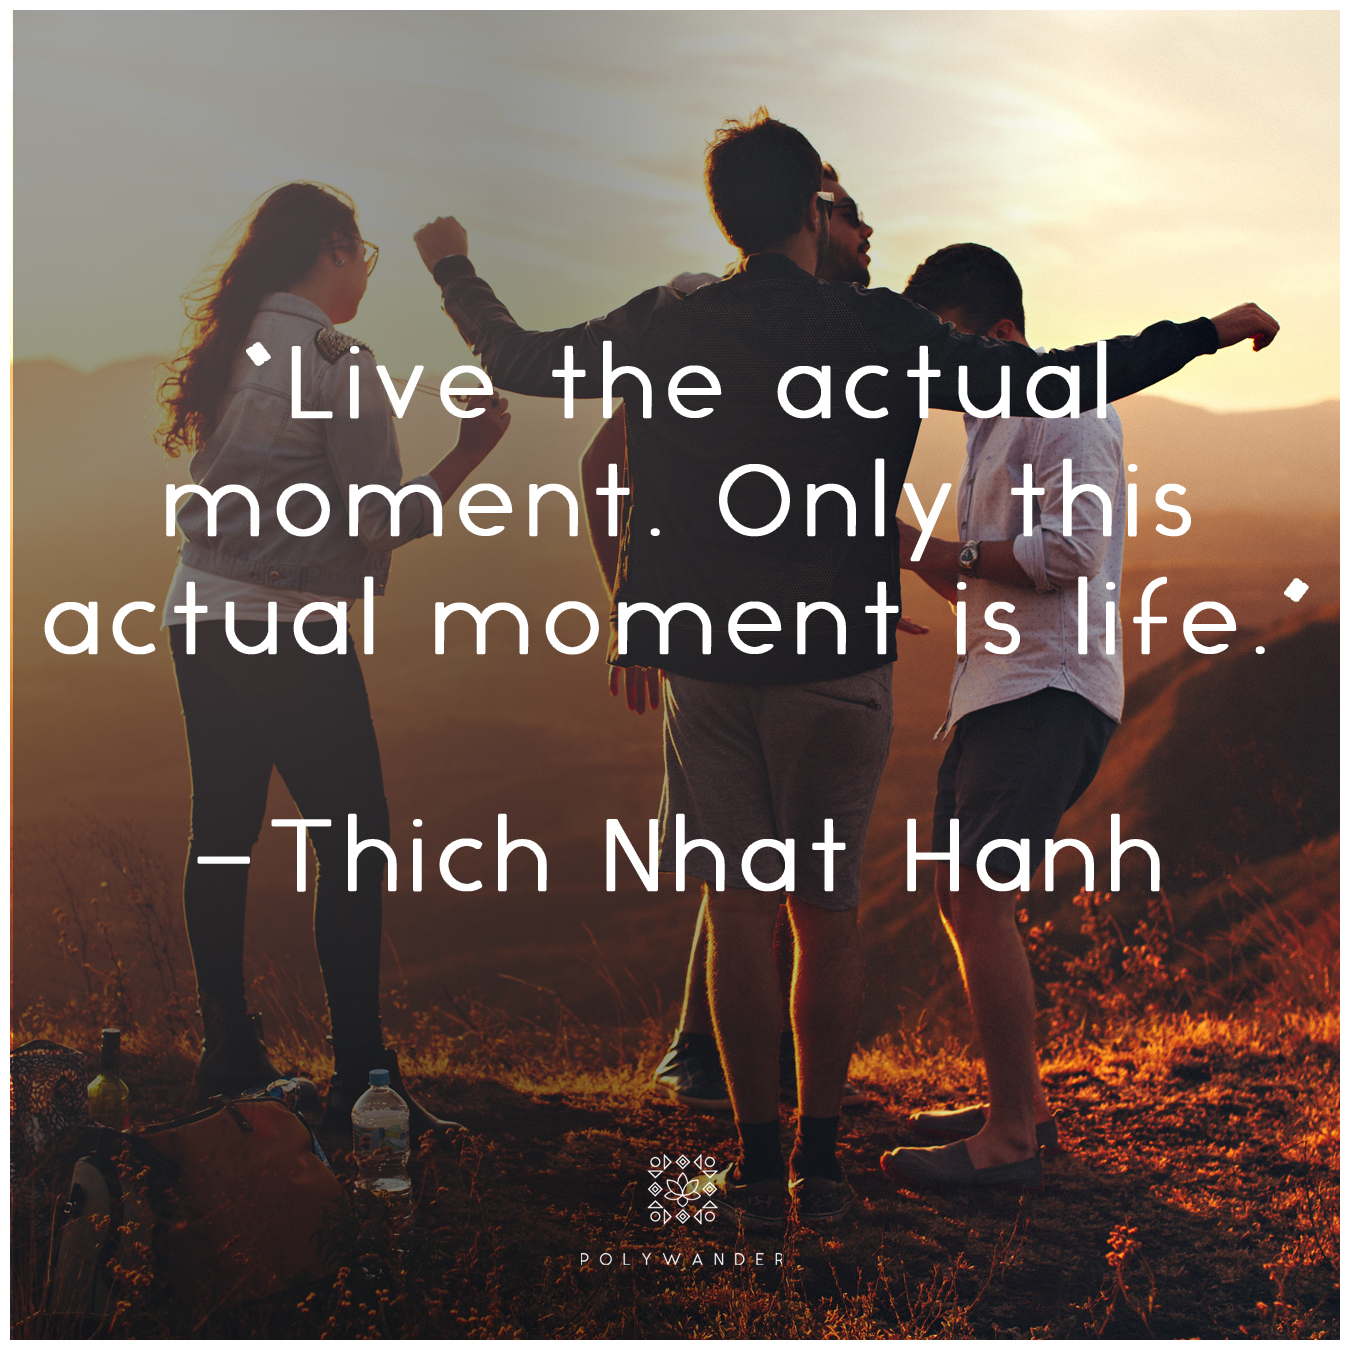 """Live the actual moment. Only this actual moment is life."" —Thich Nhat Hanh"